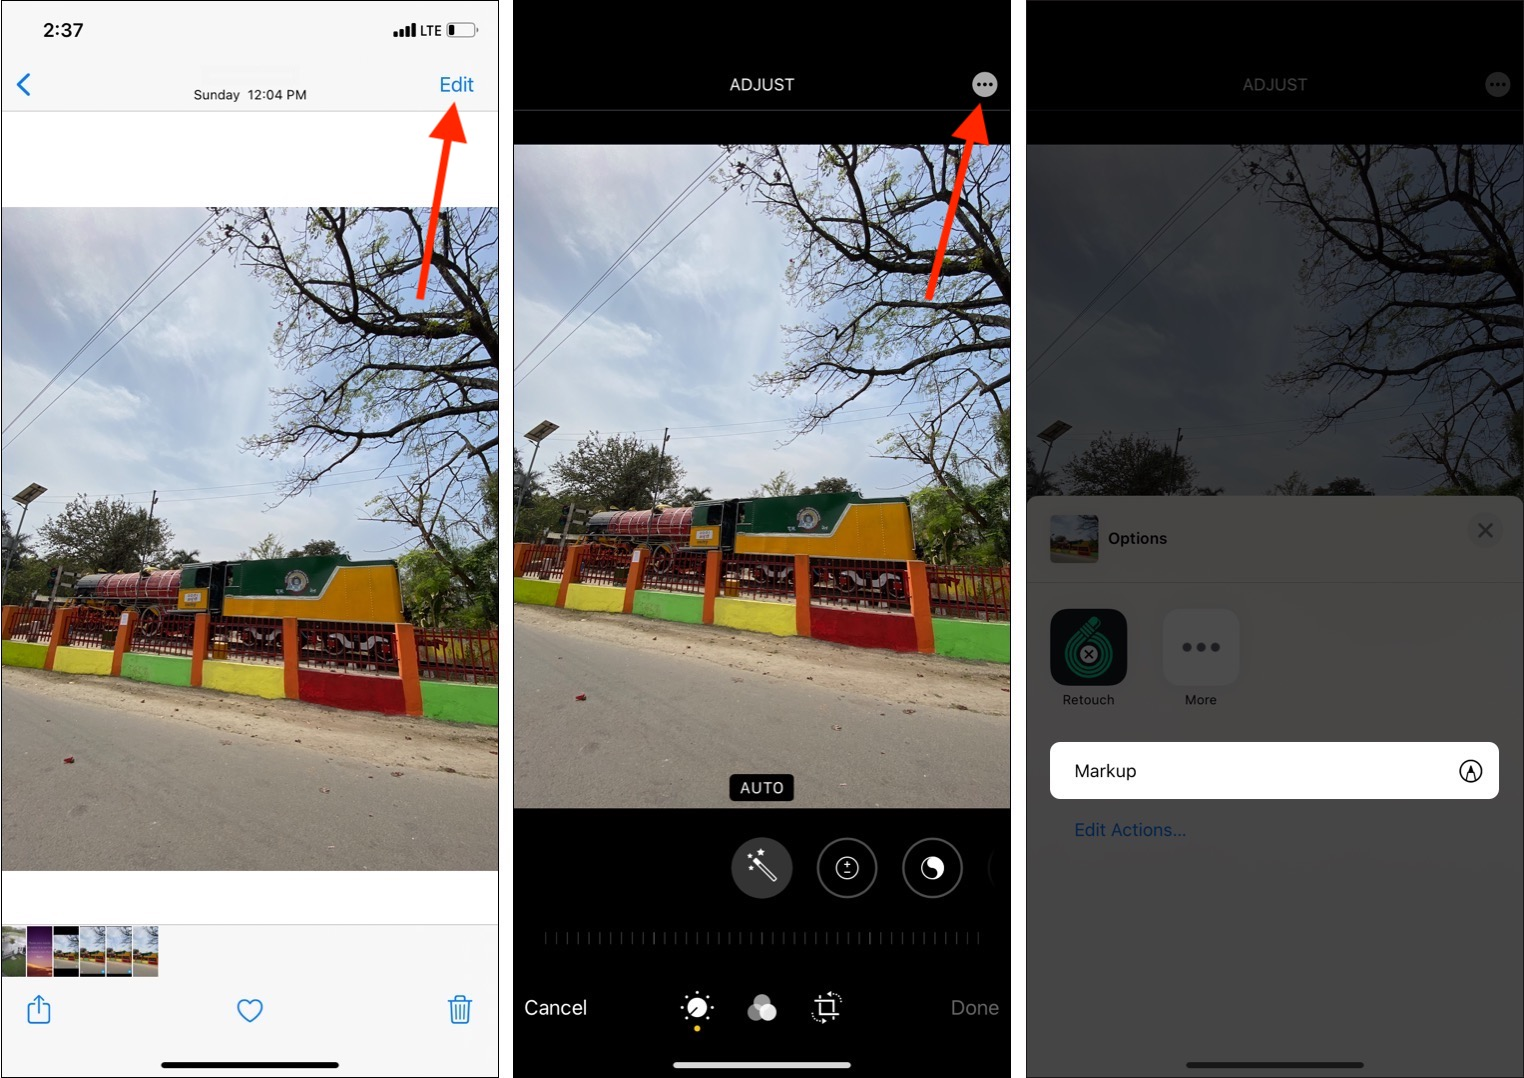 Open an image tap Edit then three dots icon and tap Markup